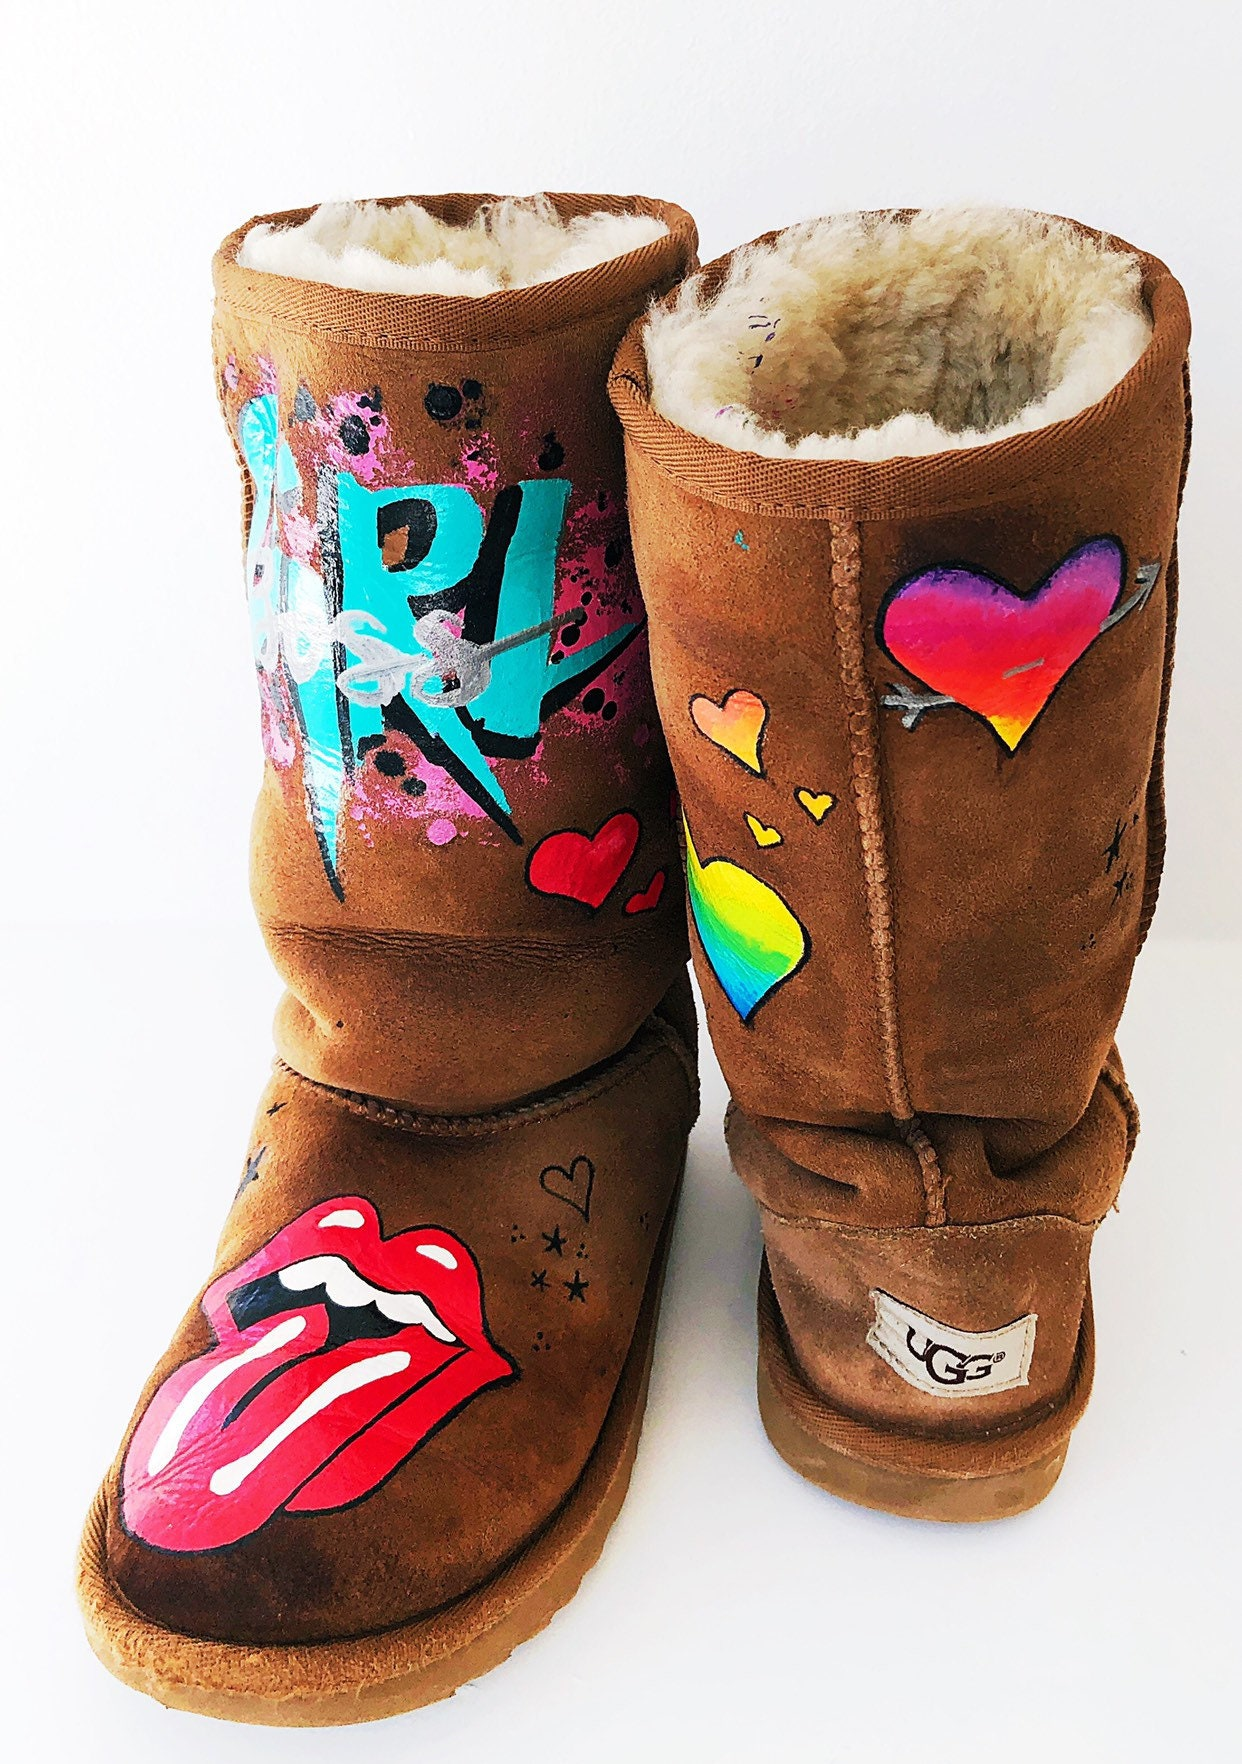 49a1cf7c5b0 Custom Uggs - painted Uggs - personalized Uggs - handpainted Uggs -  Personalized Gifts for Teens